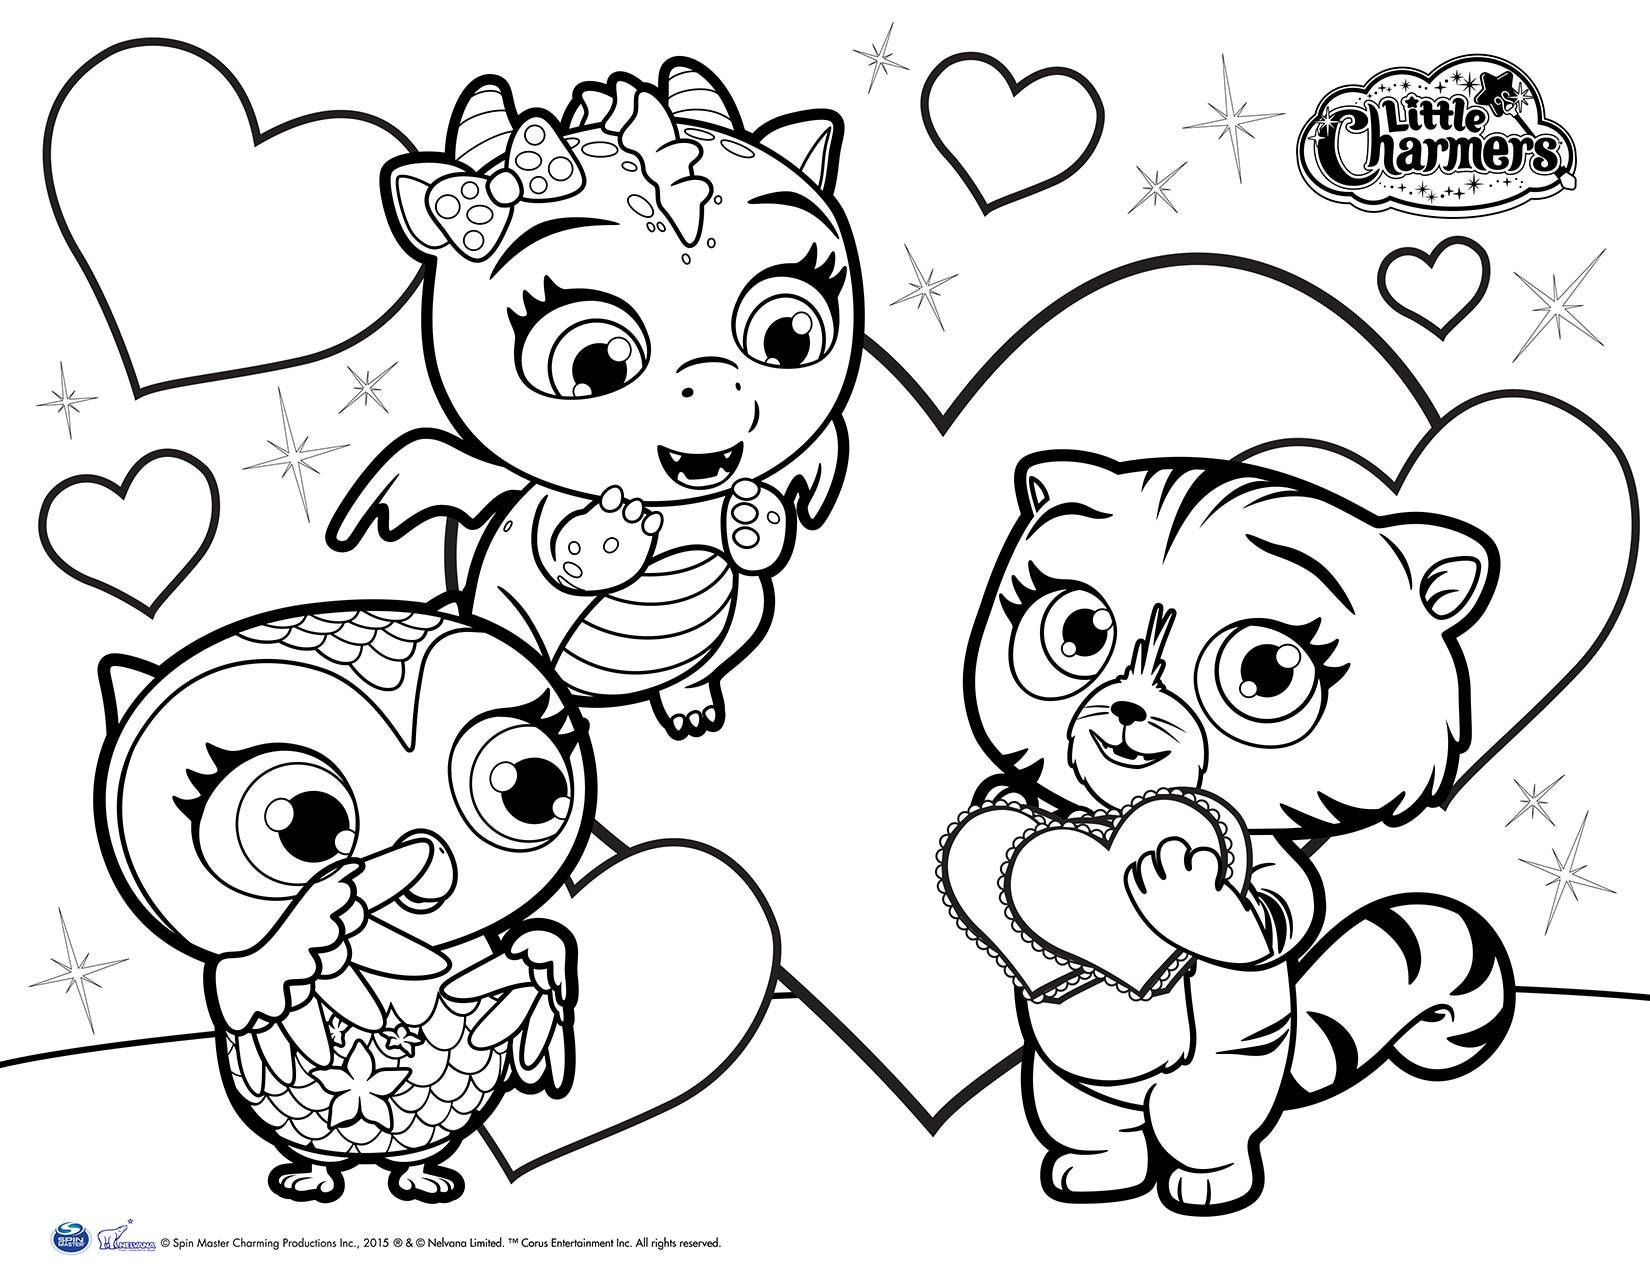 Pin By Kristina Hanes On Coloring Pages Little Charmers Owl Art